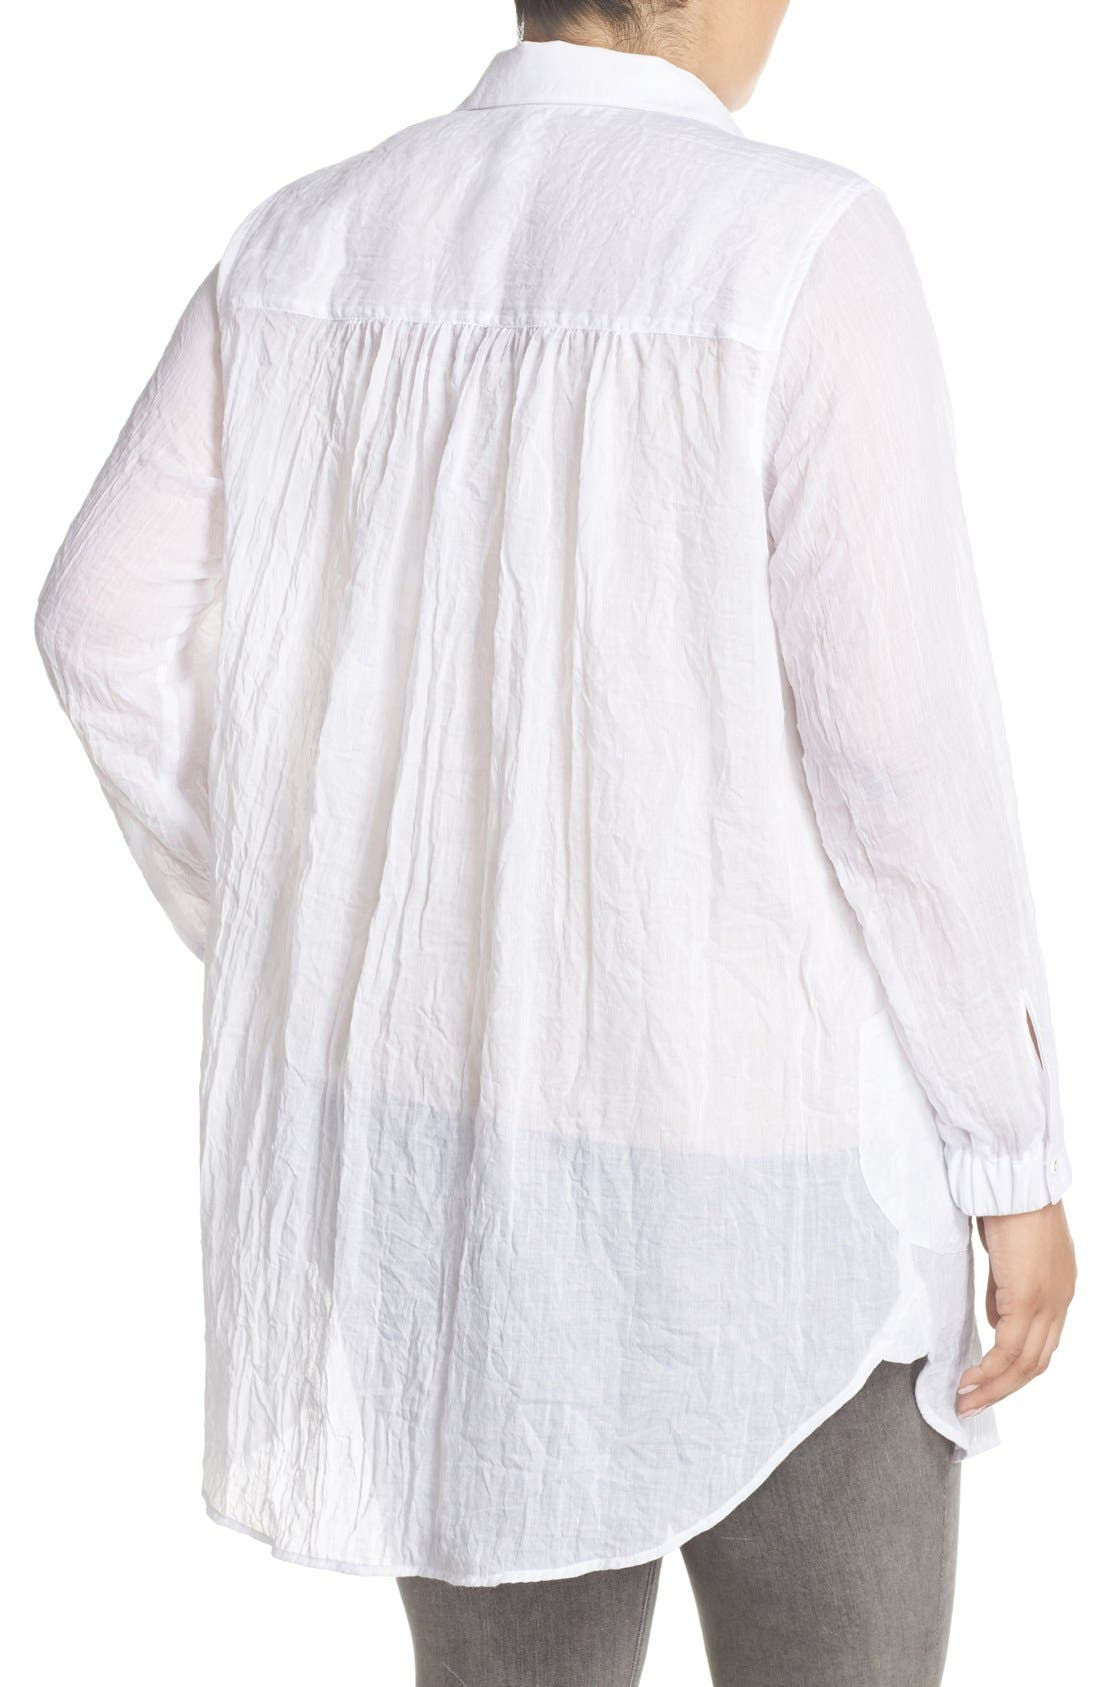 Alternate Image 2  - Melissa McCarthy Seven7 Patch Pocket Tunic Shirt (Plus Size)